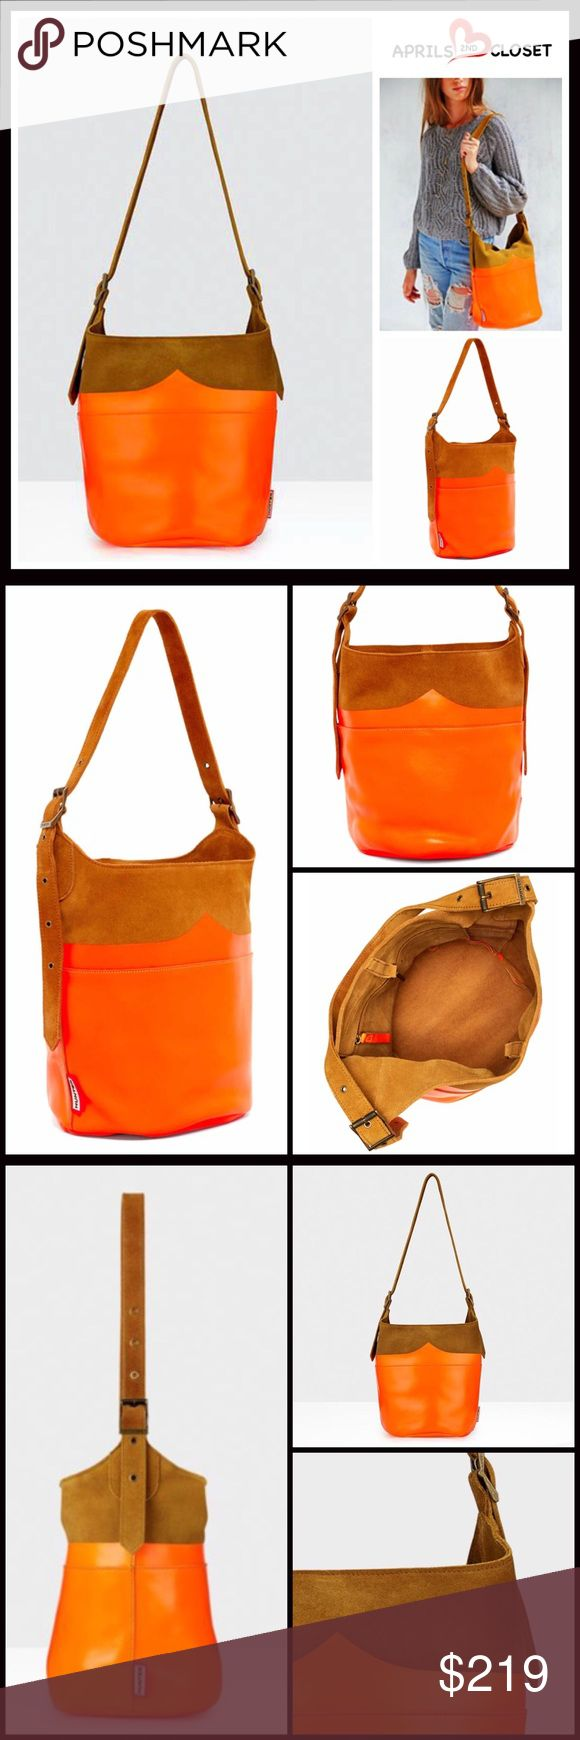 """❗️1-HOUR SALE❗️HUNTER Suede Leather Bucket Bag 💟NEW WITH TAGS💟  HUNTER Original Suede Leather Bucket Bag  * Exterior-tonal color-block leather / suede construction   * Single adjustable shoulder handle; 9"""" - 11"""" drop; Interior hanging zip pocket  * Lobster clasp top closure  * Approx. 12.5""""H x 15""""W x 9 3/8"""" D  * Dustbag included  * A firm structure bottom Material- Suede Color-Neon orange, tan SEARCH# Bucket non woven saddle ITEM#H917500 🚫No Trades🚫 ✅ Offers Considered/Bundle Discounts ✅…"""